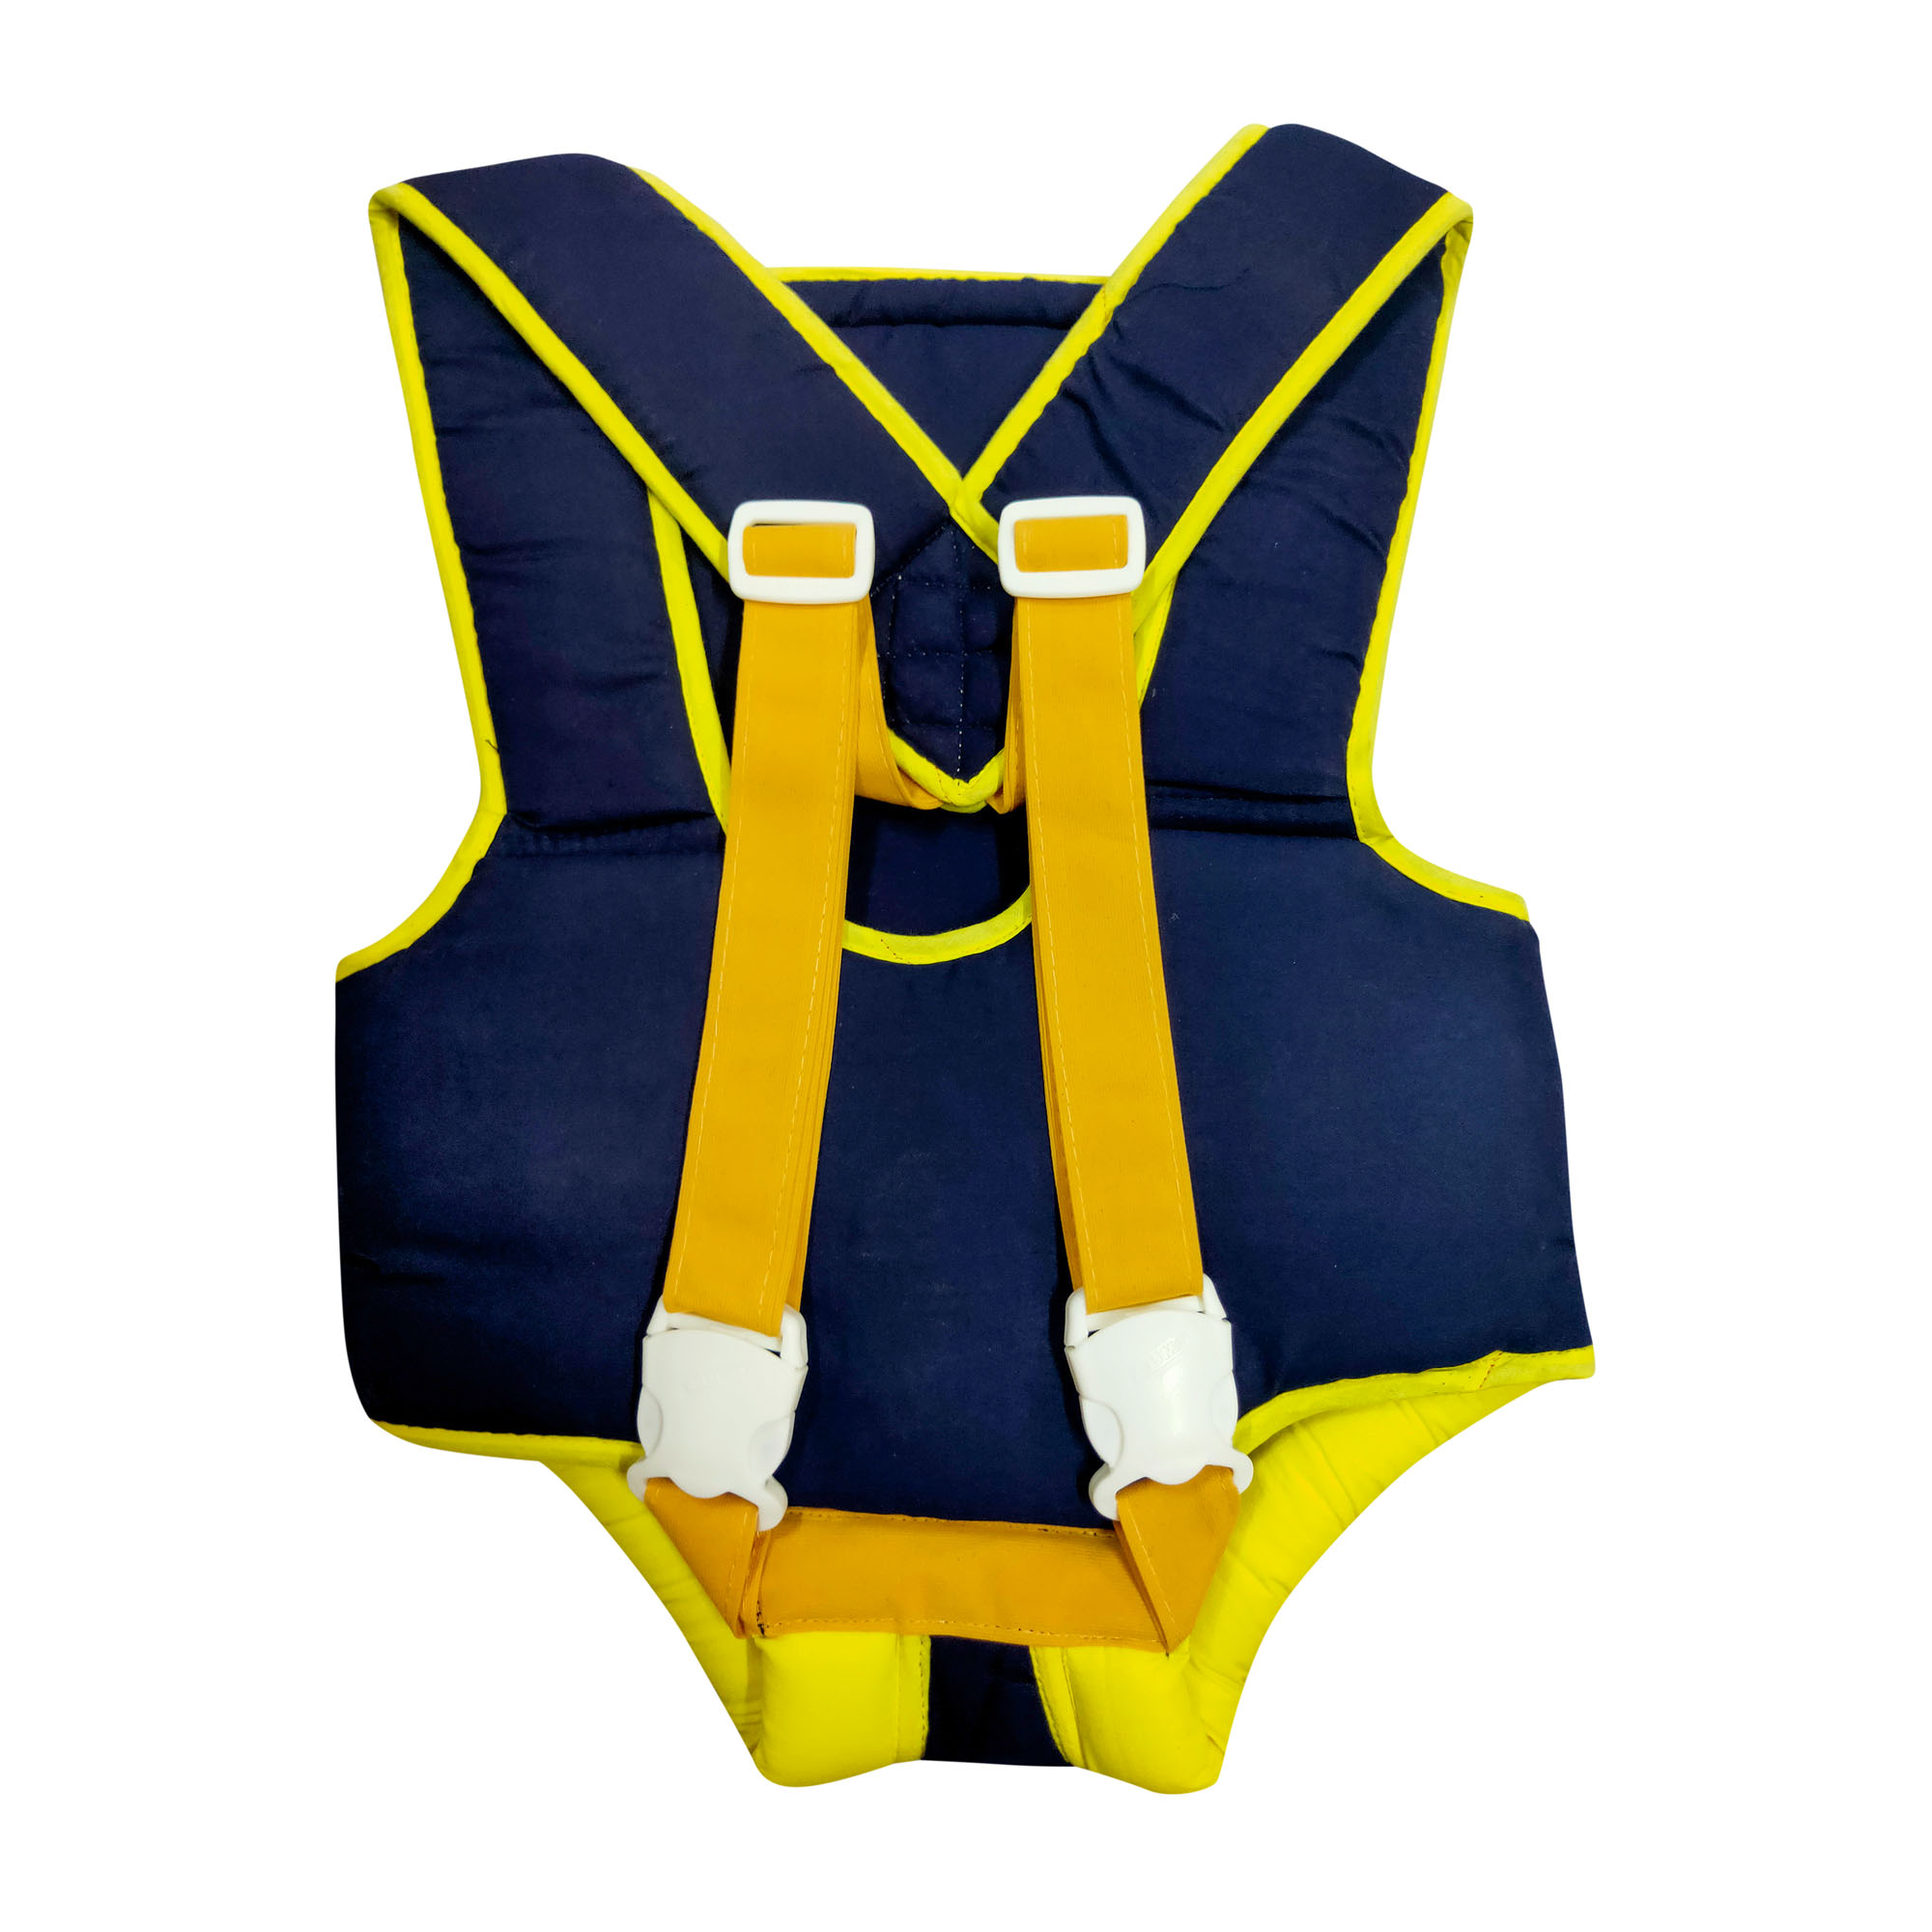 Denim cotton baby carrier For Infant By Love Baby - Dk14 Yellow P1